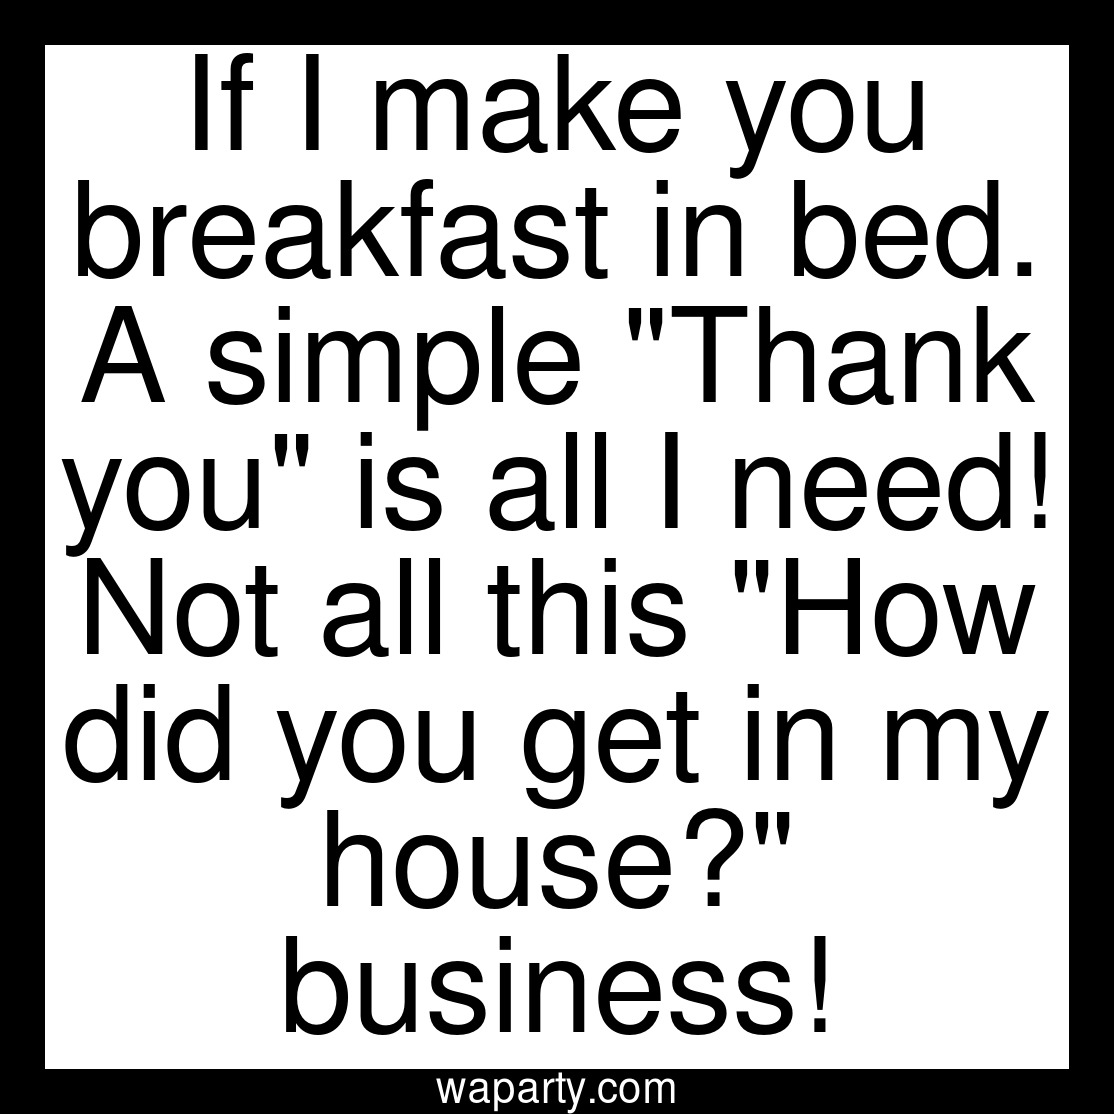 If I make you breakfast in bed. A simple Thank you is all I need! Not all this How did you get in my house? business!